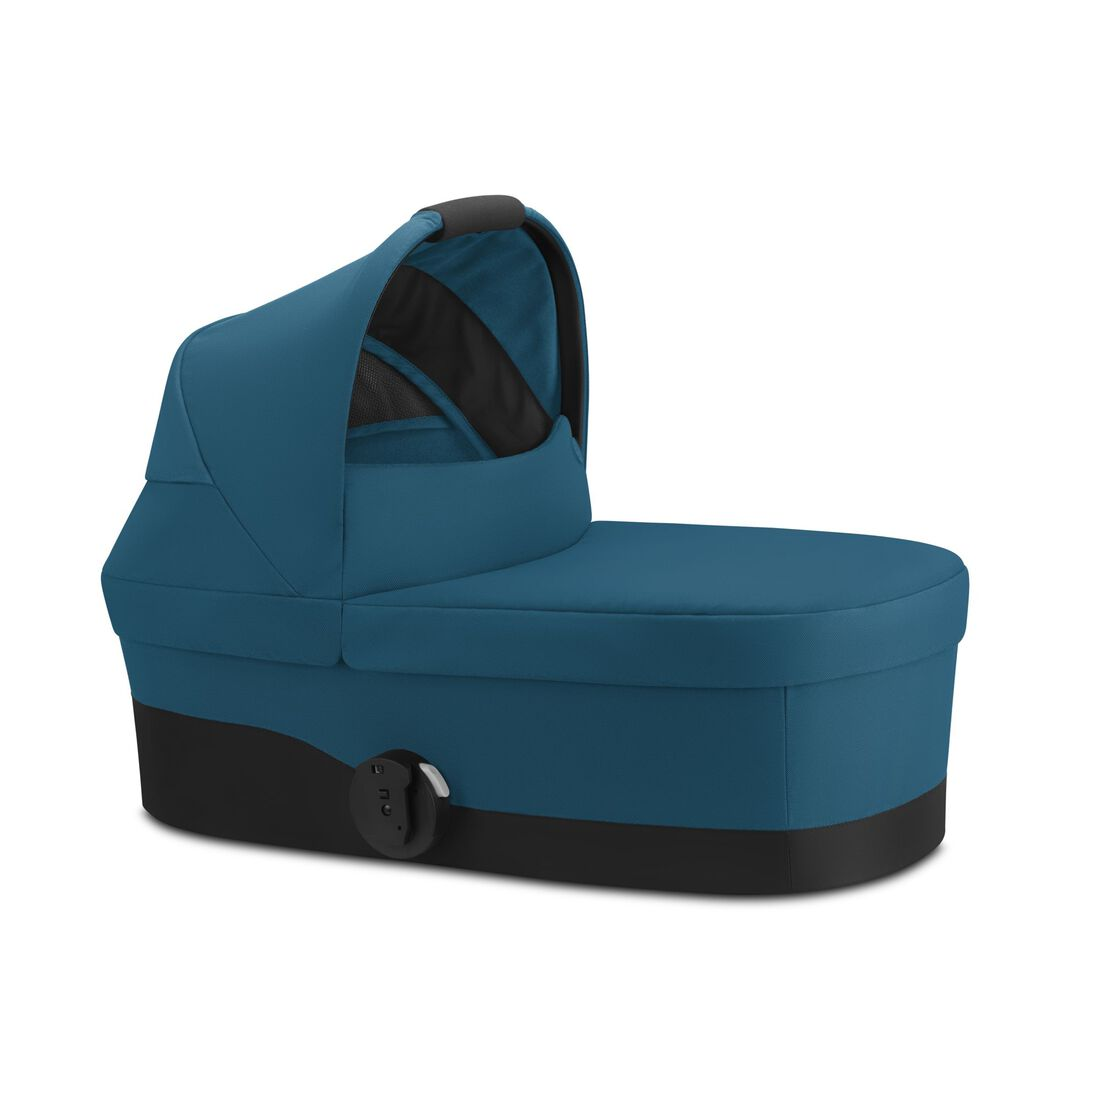 CYBEX Cot S - River Blue in River Blue large image number 1